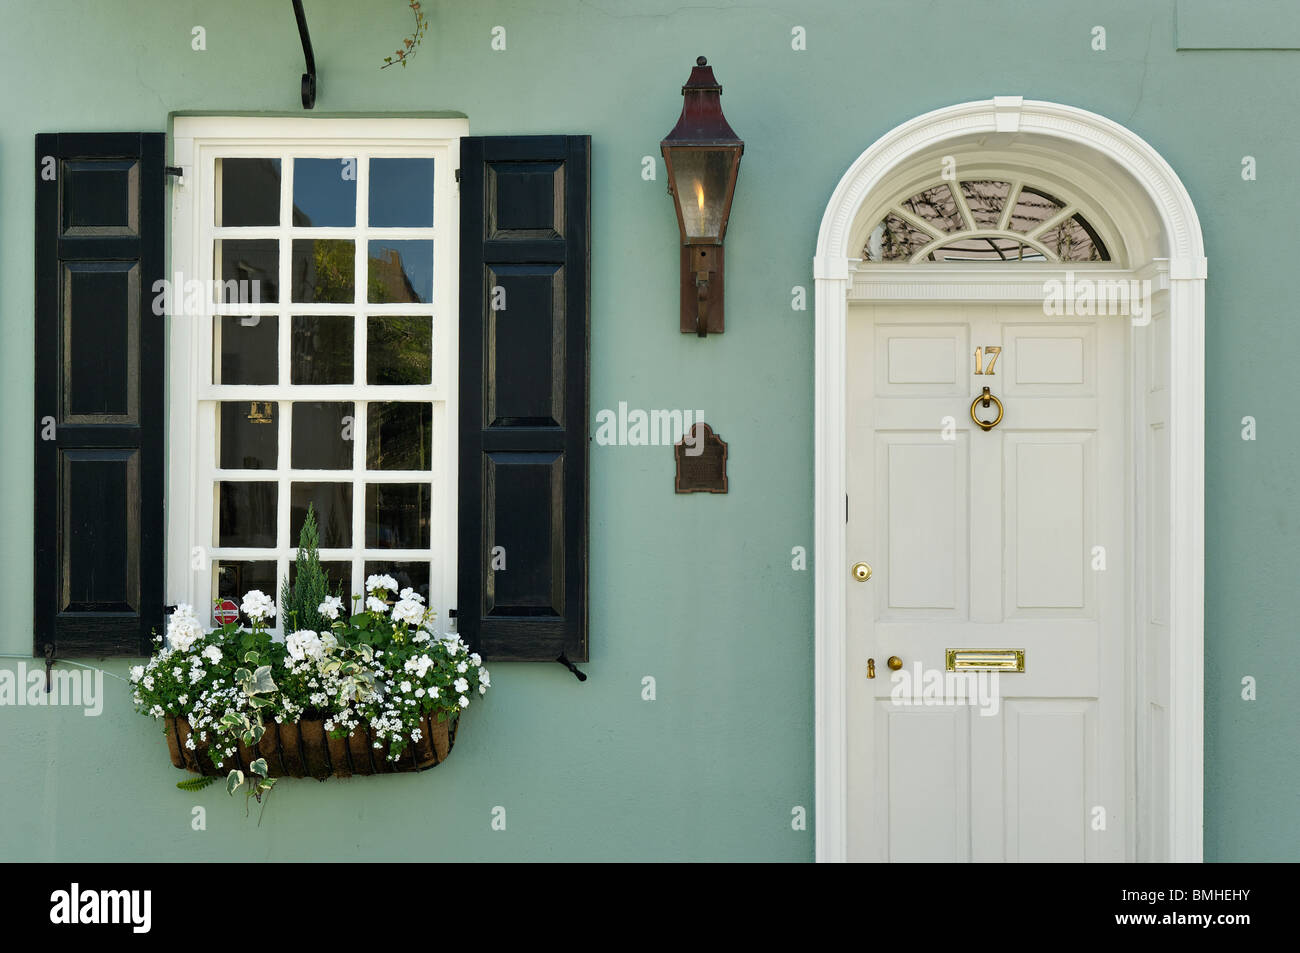 Detail of Door and Window of the Historic Charles Warham Home in Charleston, South Carolina - Stock Image